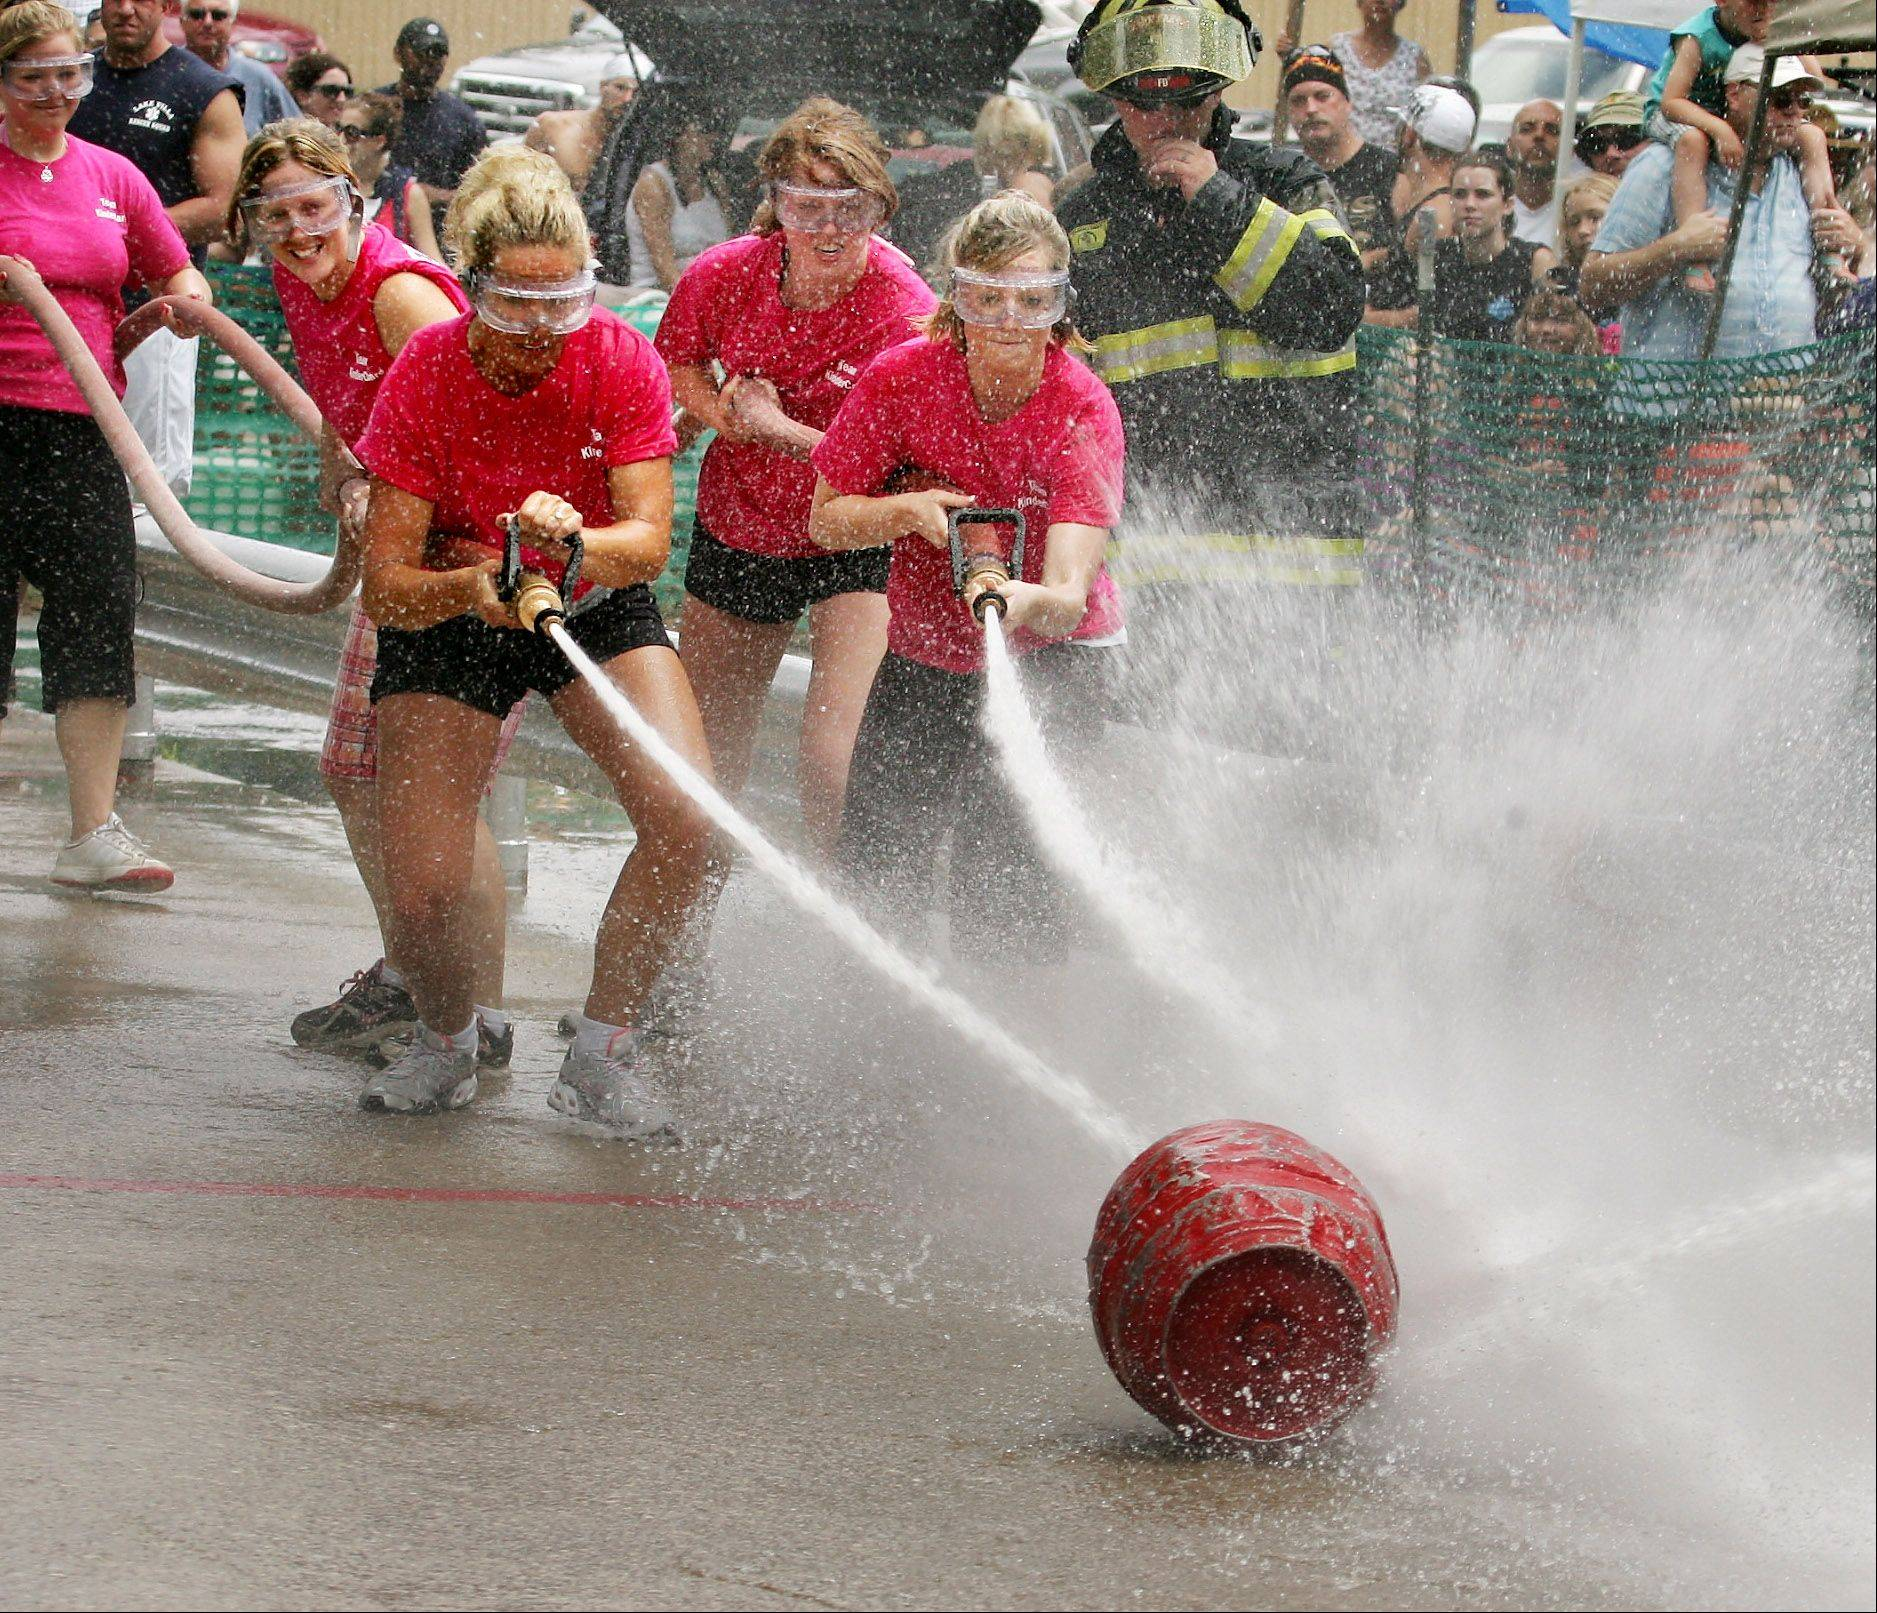 Ashley Ovaska, left, and Jennifer Robinson lead the KinderCare team against the Great American Tire team during the fireman's water fights on the last day of the 2009 Lake Villa Days.